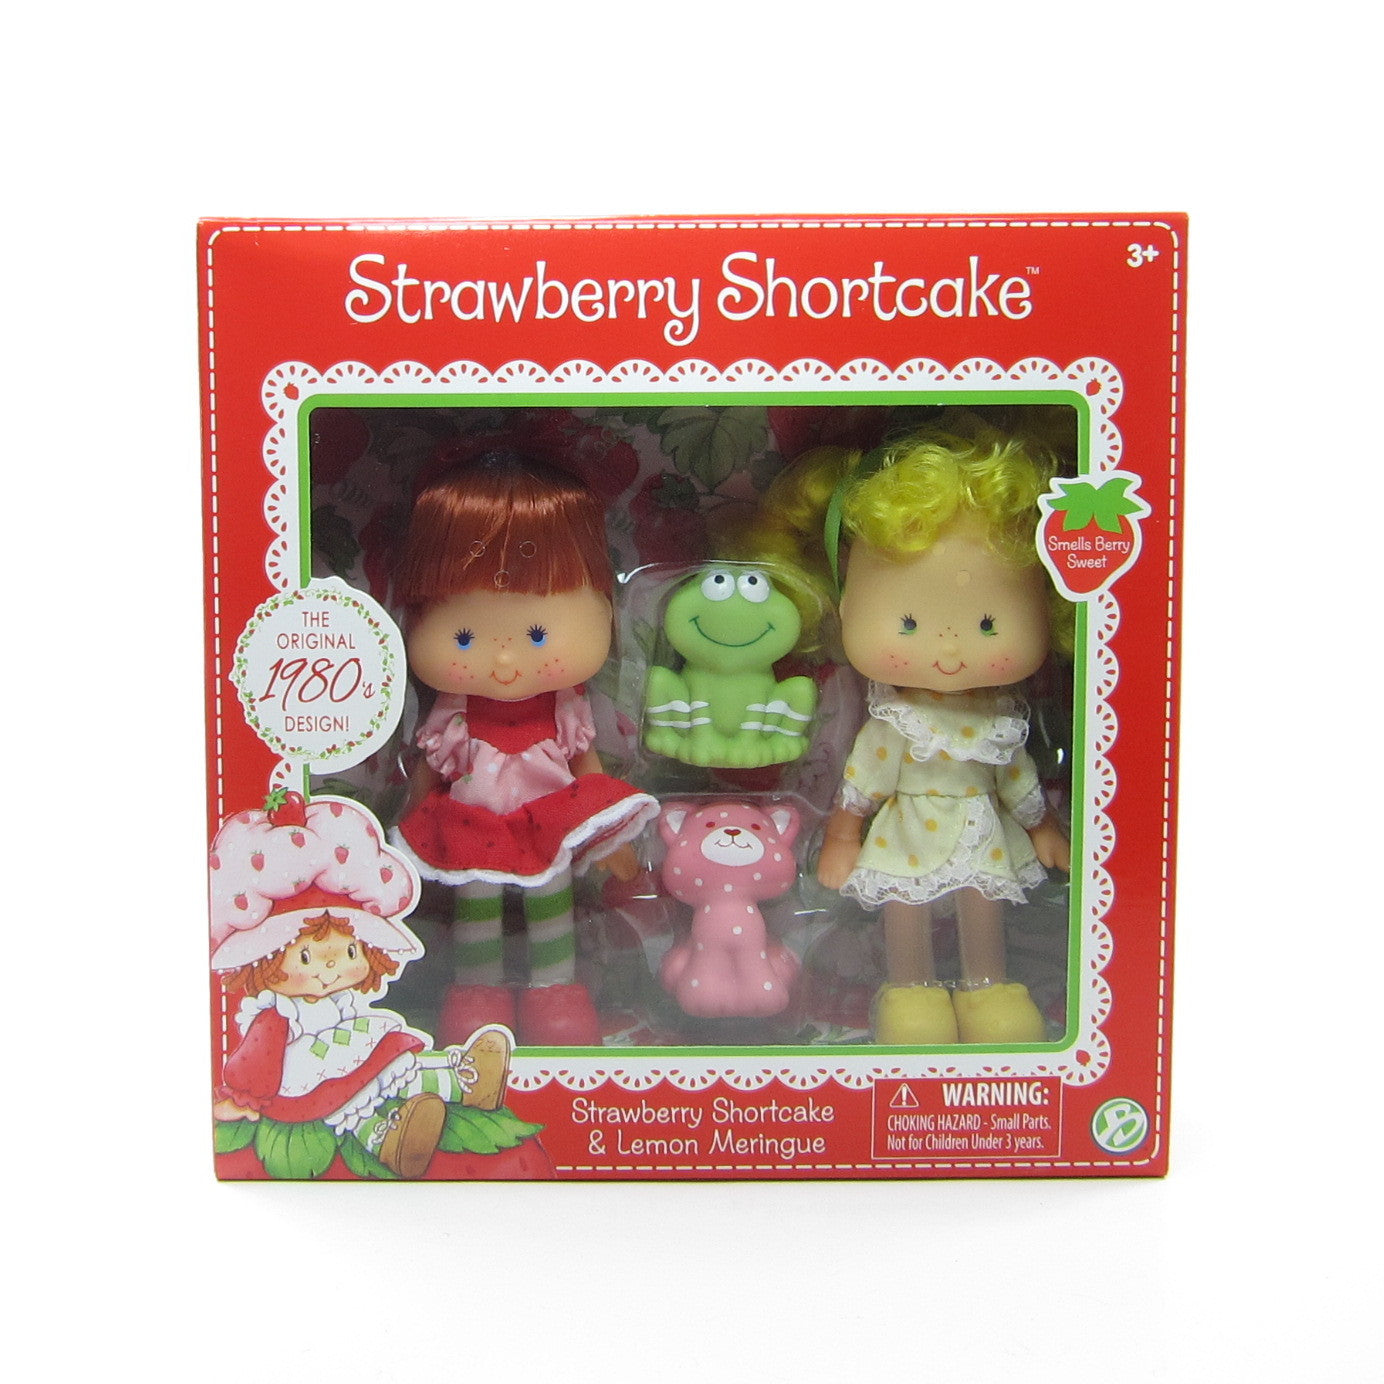 Strawberry Shortcake and Lemon Meringue classic reissued boxed doll set